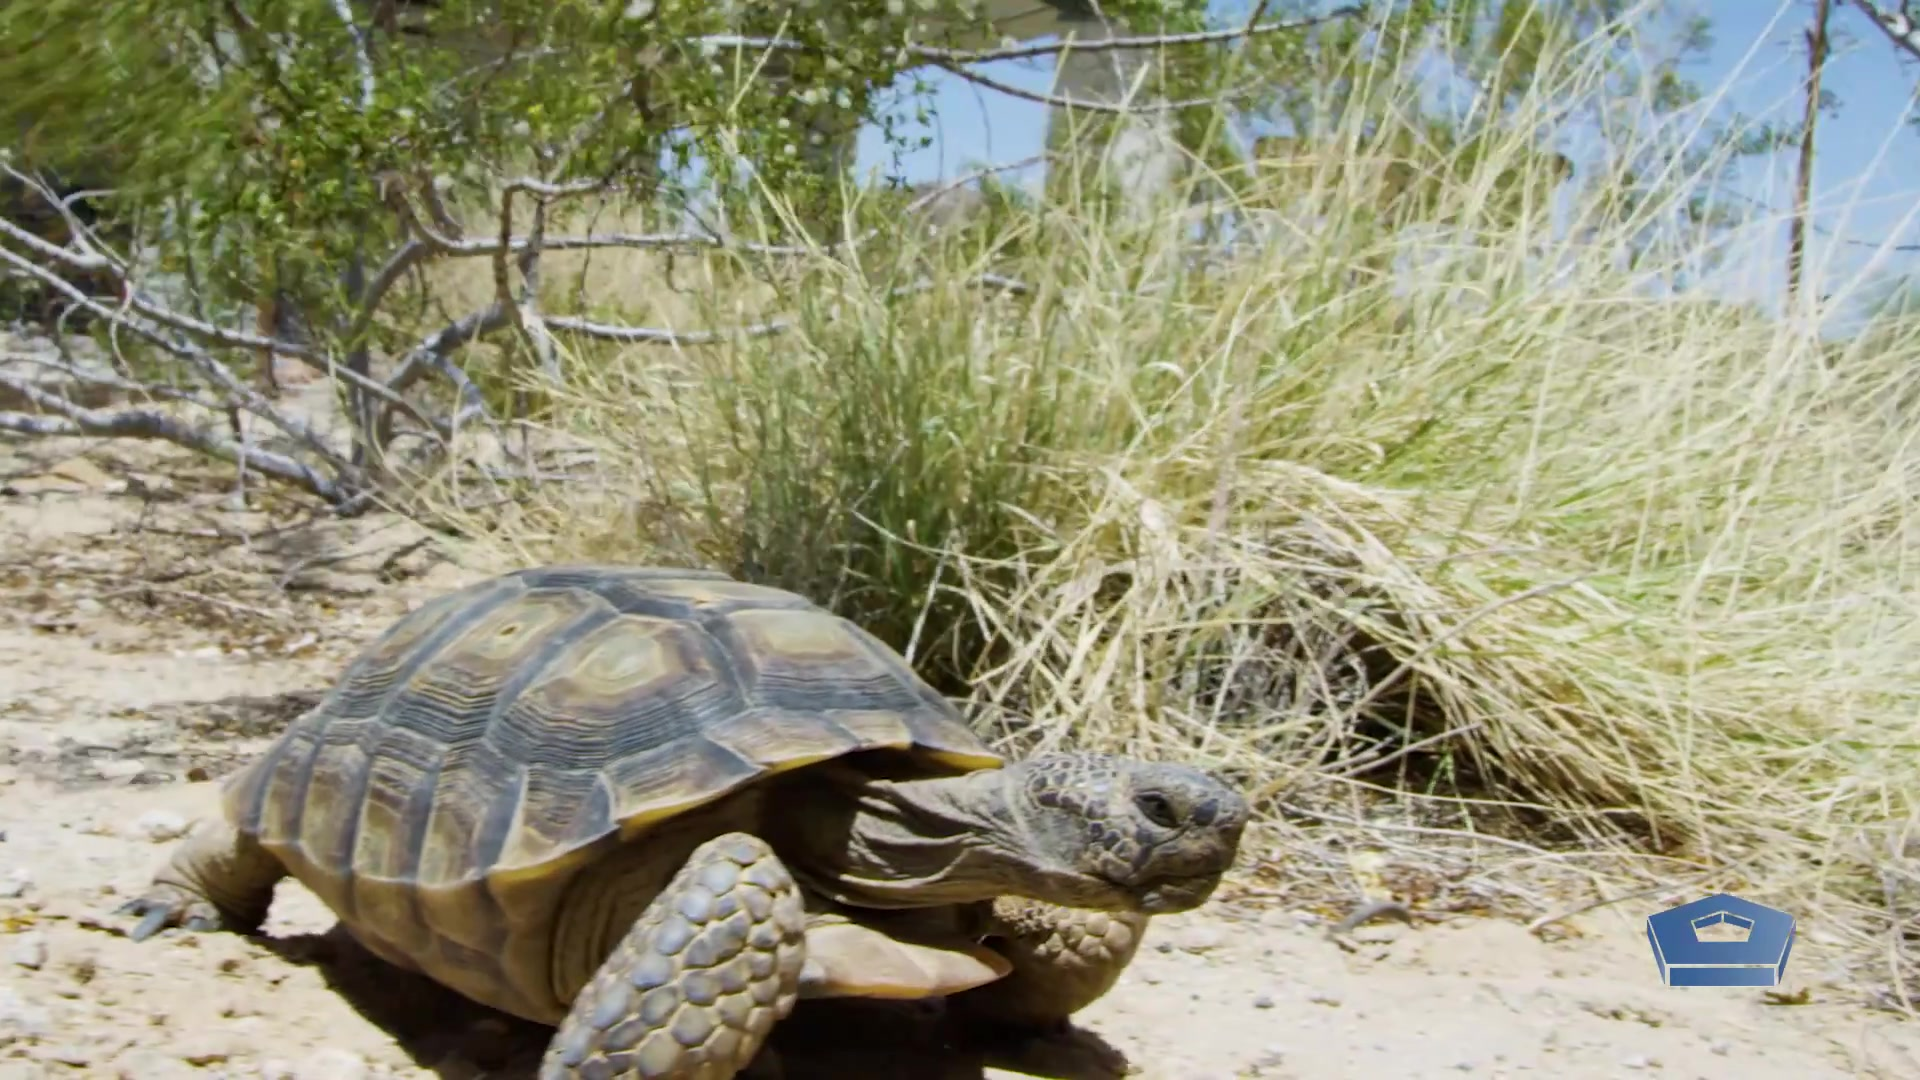 A tortoise walks along the desert next to branches and grass.